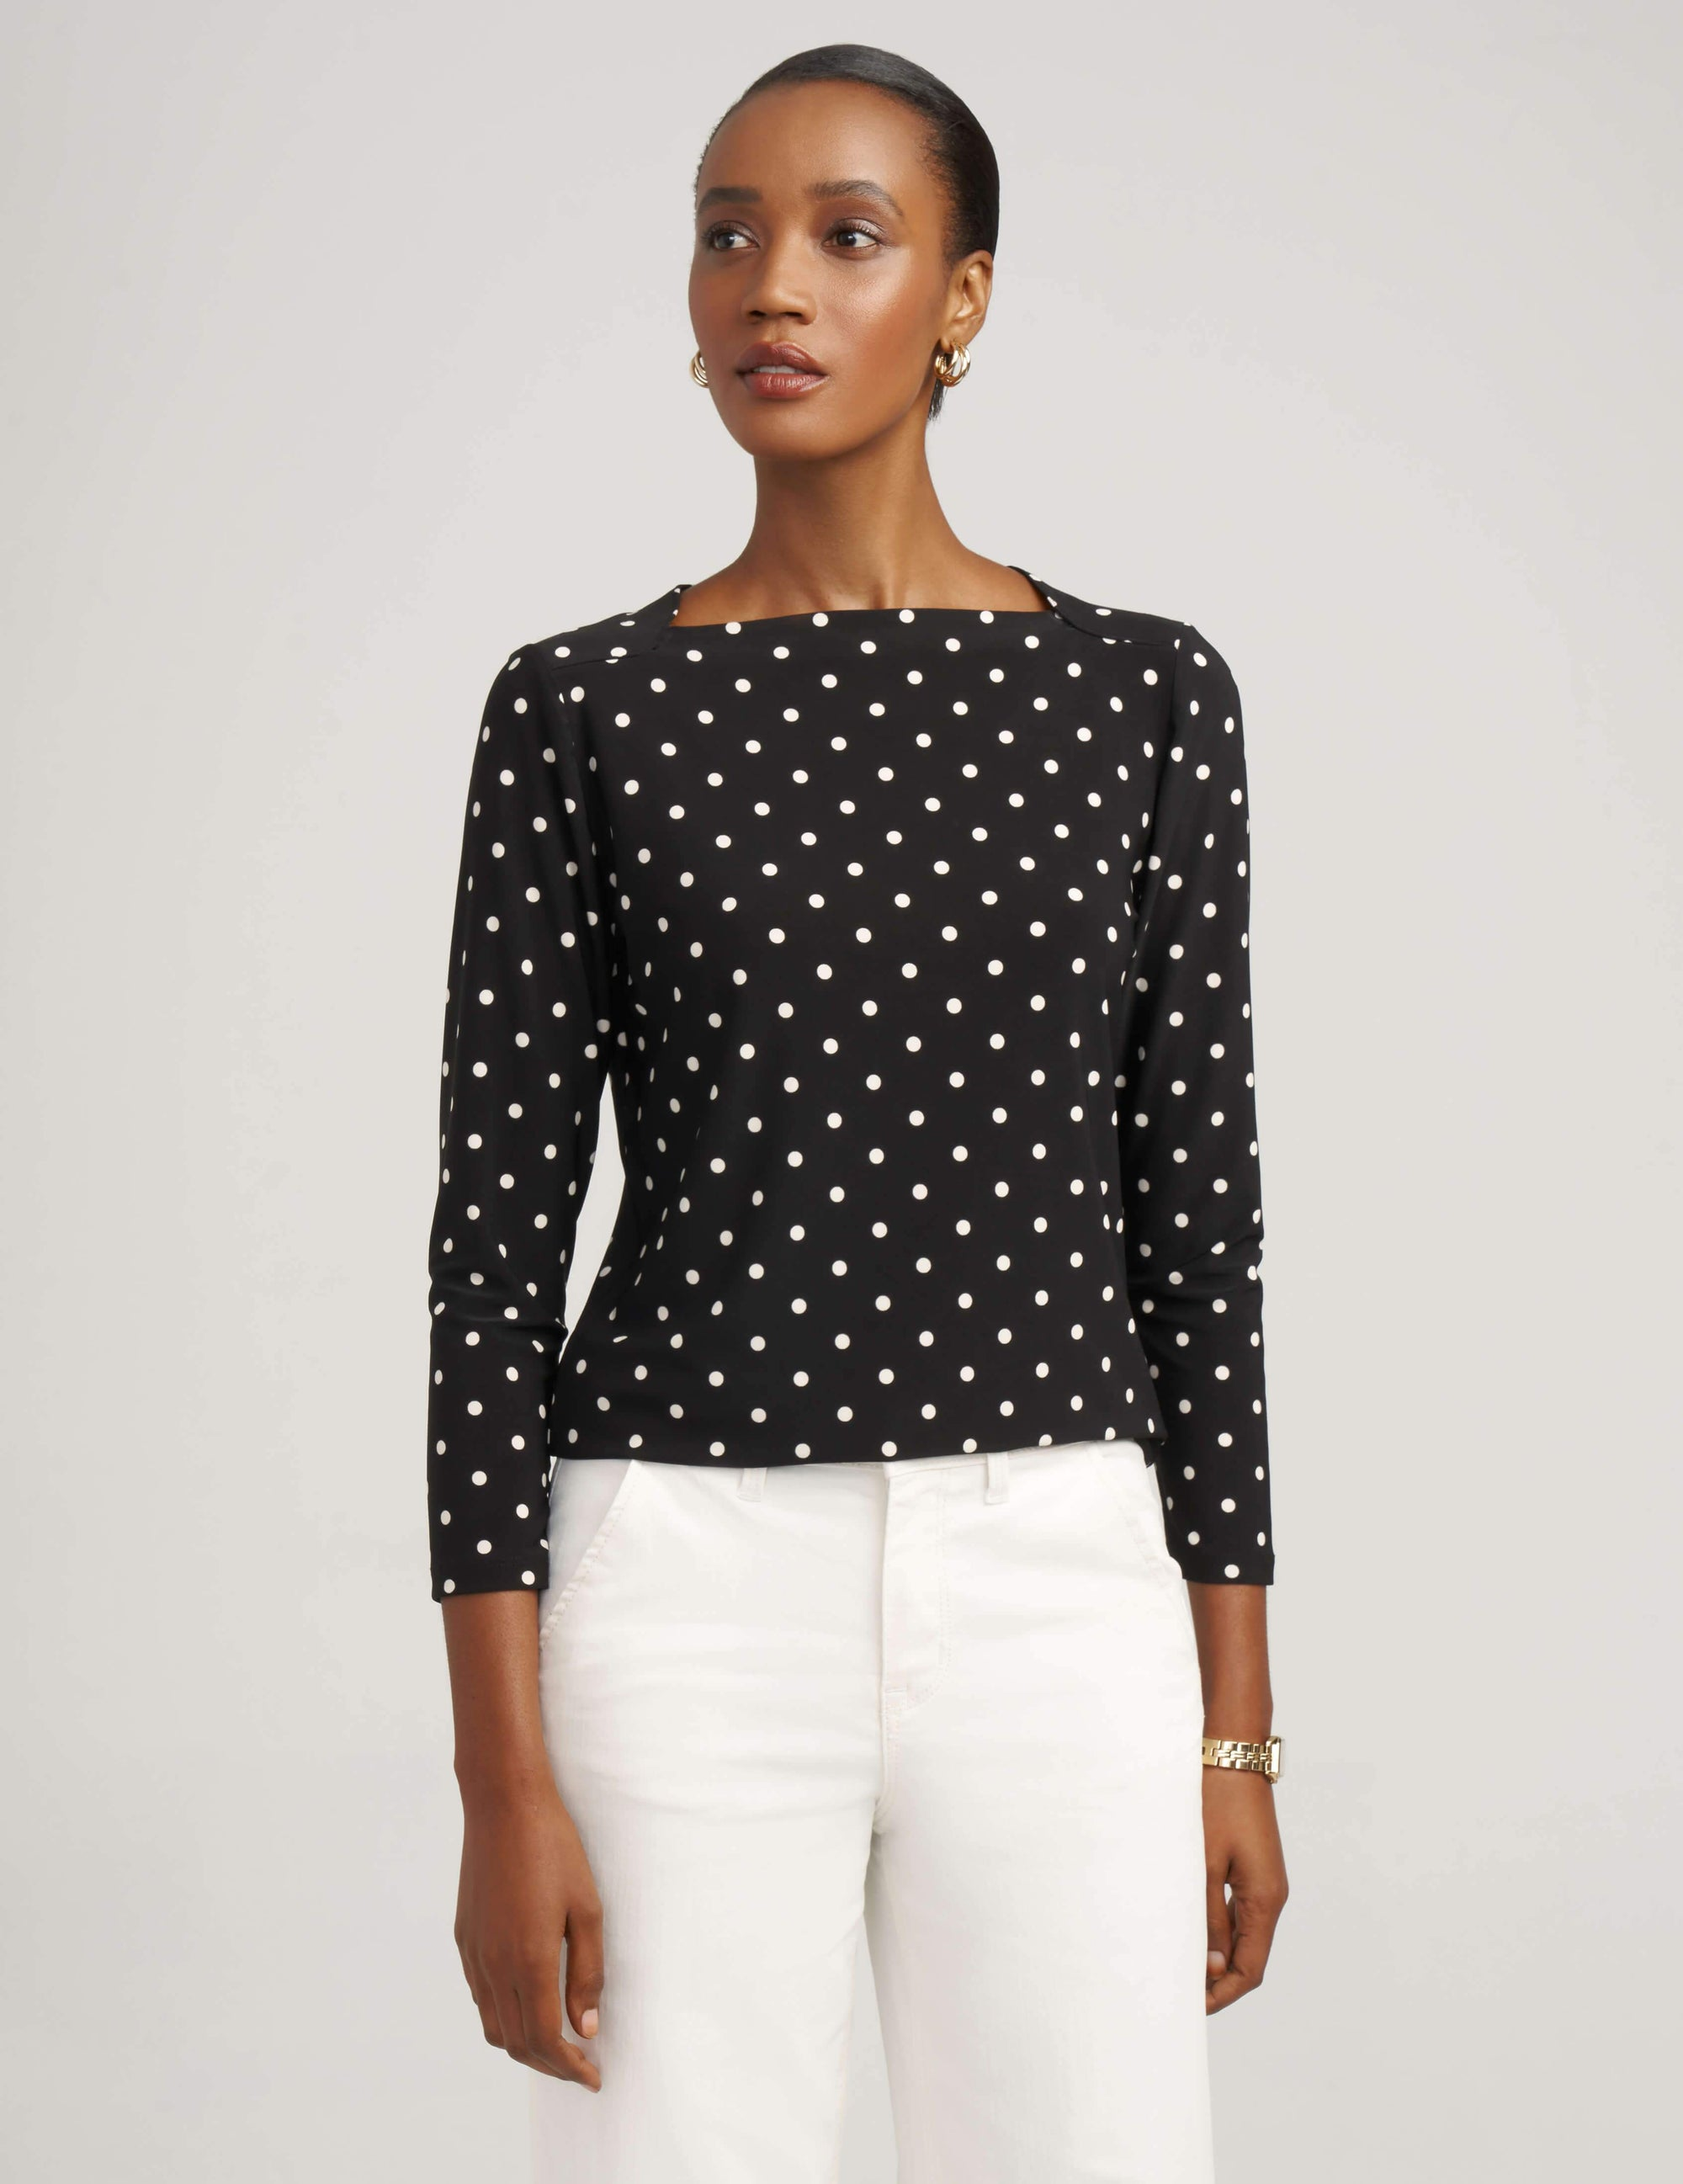 Anne Klein Black/White Beekman Dot Sailor Top